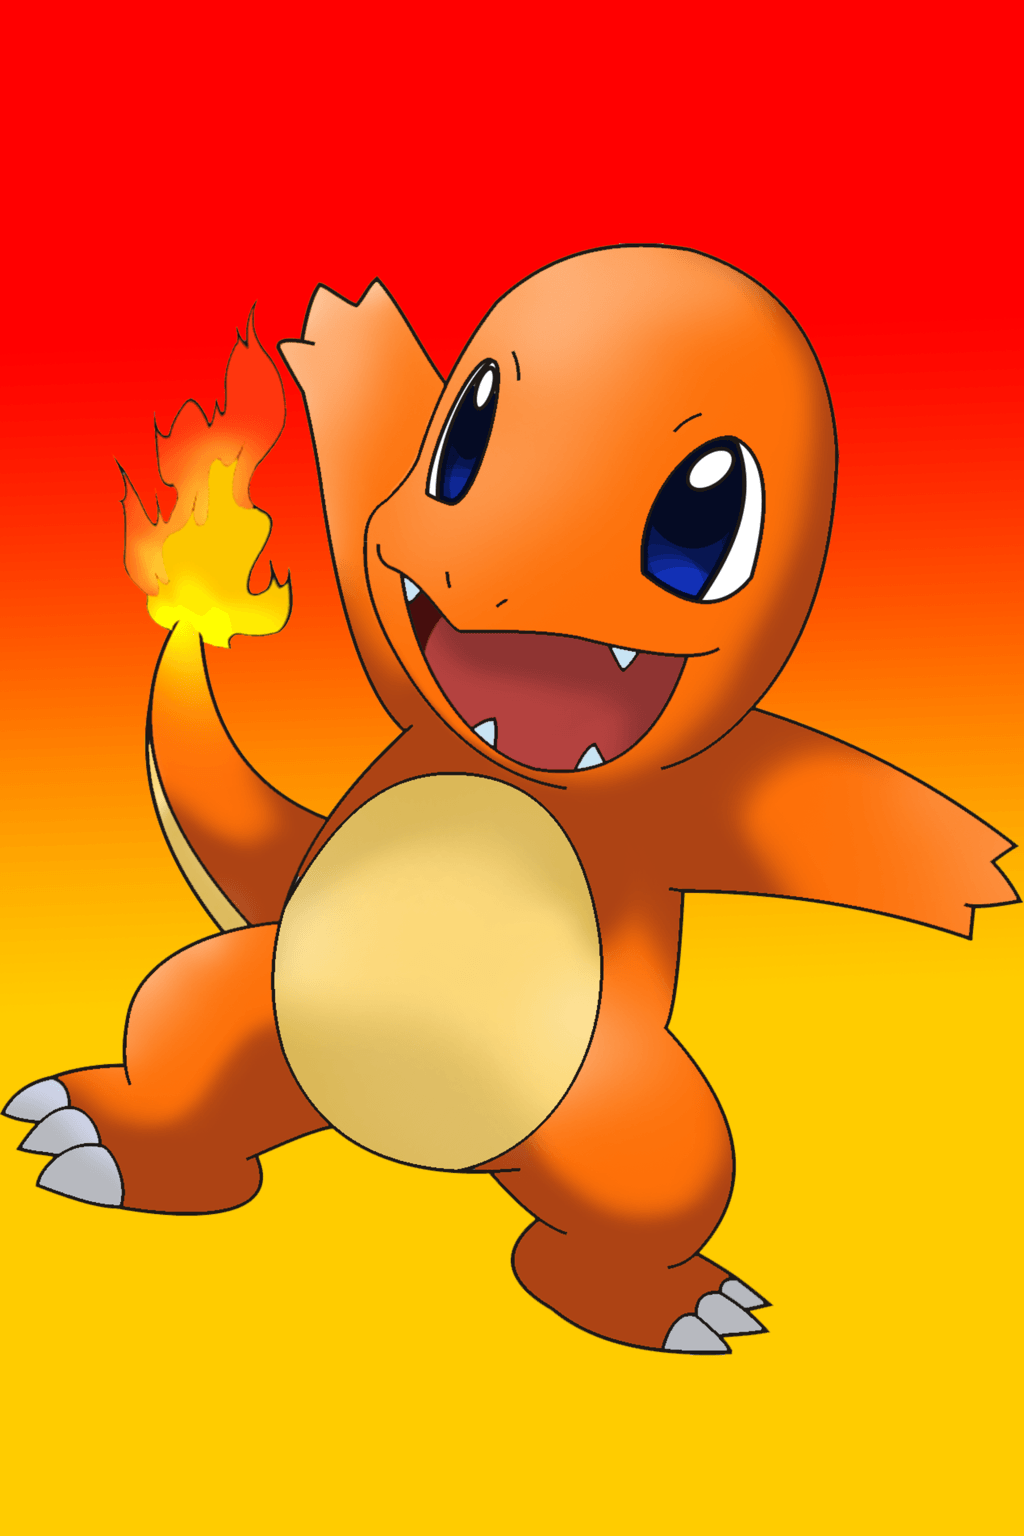 Cute Chibi Anime Wallpapers Charmander Wallpapers Wallpaper Cave